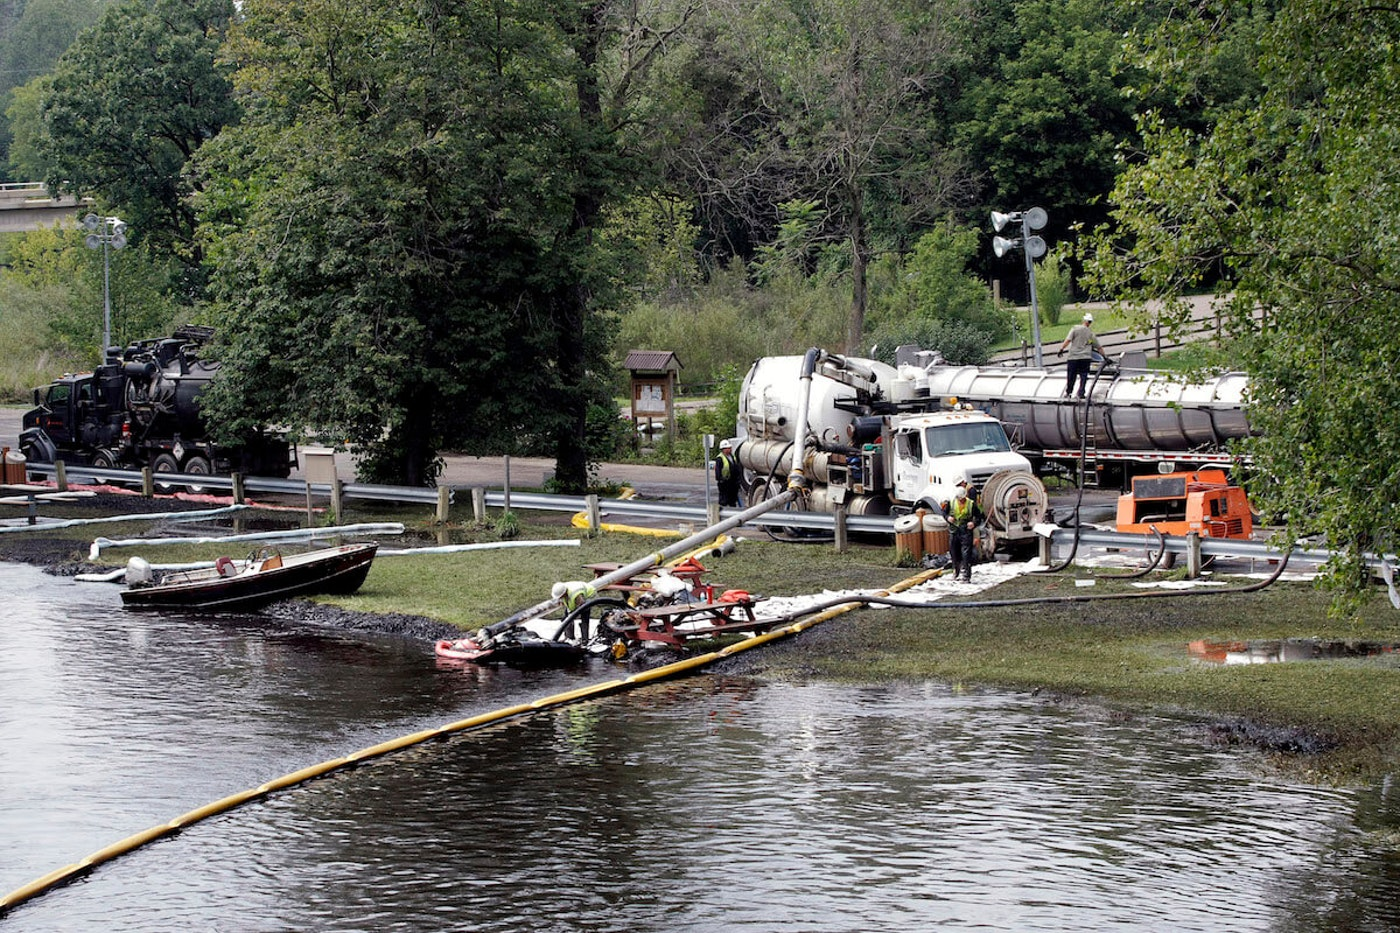 Concerns about a proposed pipeline include potential spills, such as this July 2010 oil spill of approximately 840,000 gallons of crude oil into the Kalamazoo River in Battle Creek, Michigan, from a 30 inch-wide pipeline owned by Enbridge Energy Partners. (Photo by Bill Pugliano/Getty Images)